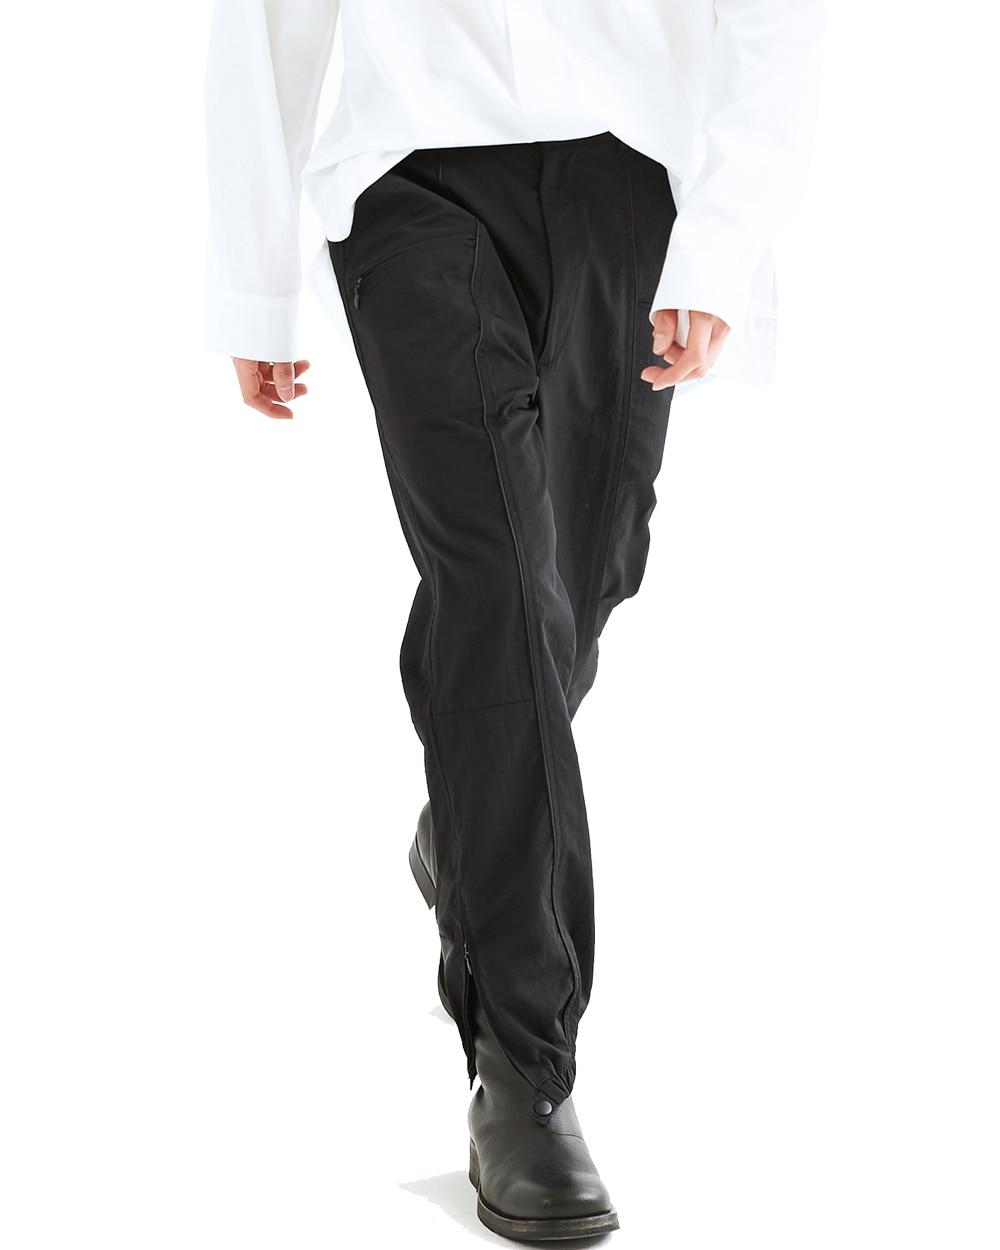 ATESTUDIOS SLIT ZIP TRACK PANTS (Black)